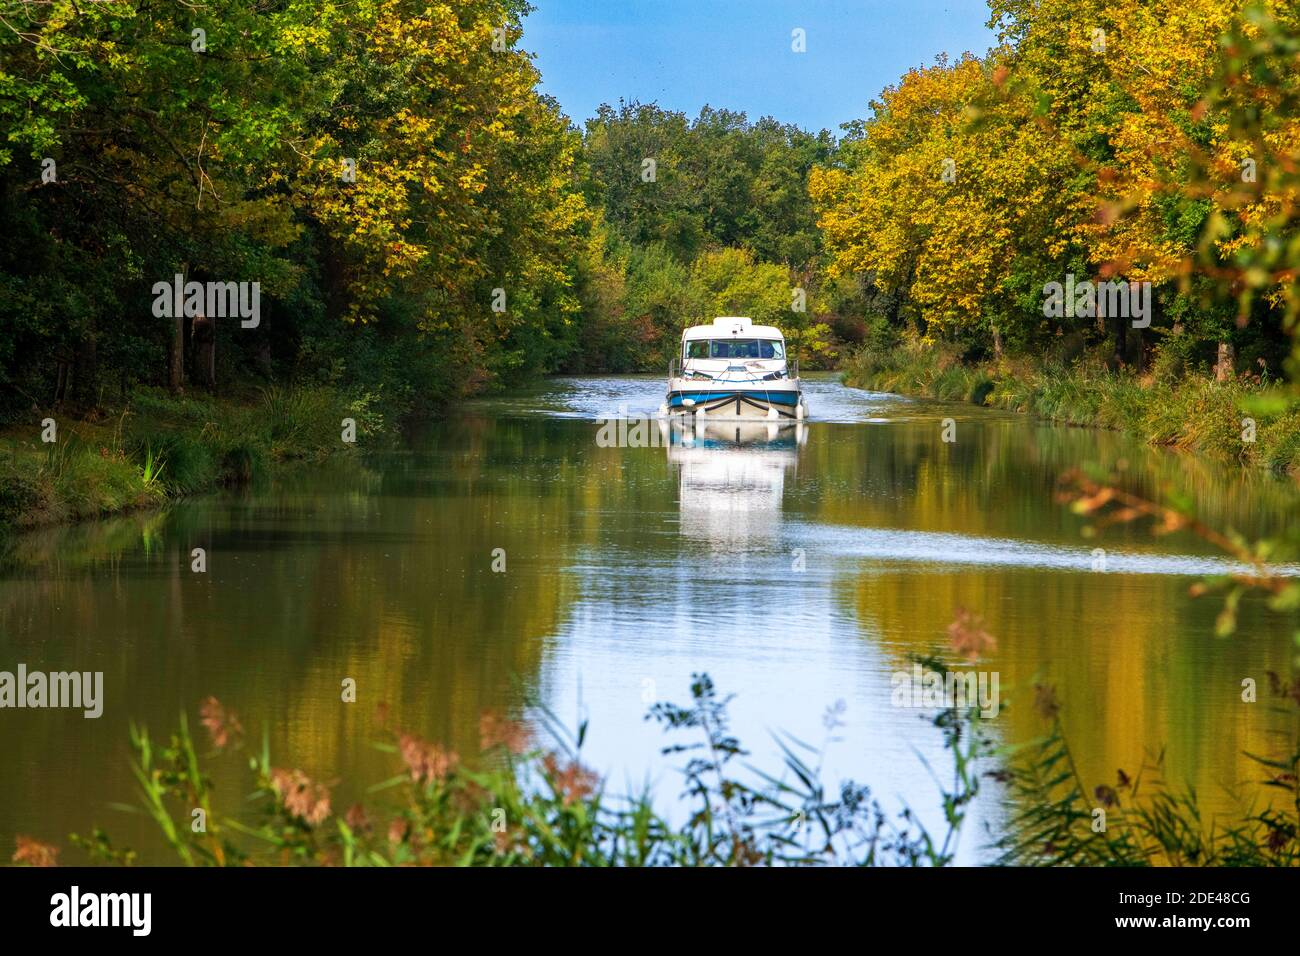 The Canal du Midi, near Carcassonne, French department of Aude, Occitanie Region, Languedoc-Rousillon France. Boats moored on the tree lined canal.  T Stock Photo